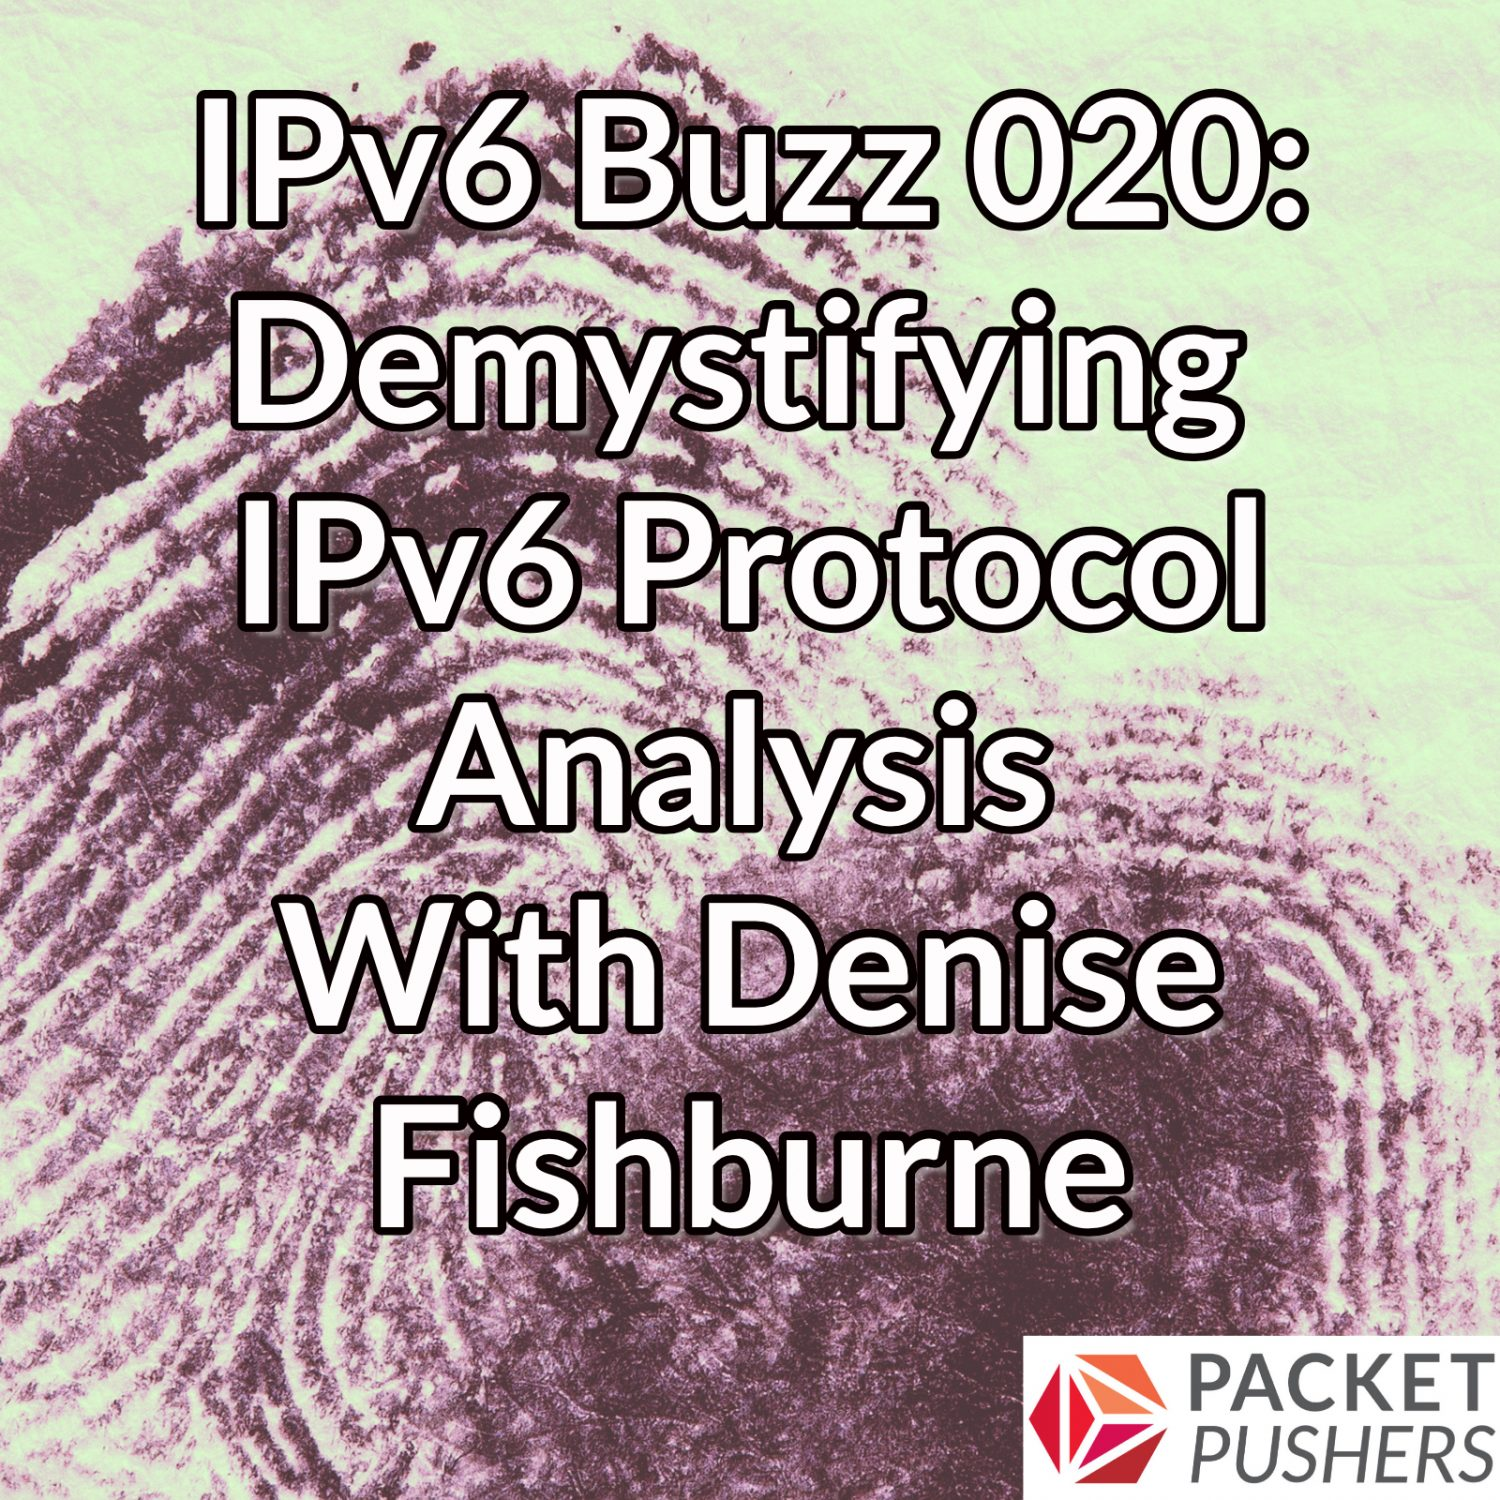 Demystifying IPv6 Protocol Analysis with Denise Fishburne